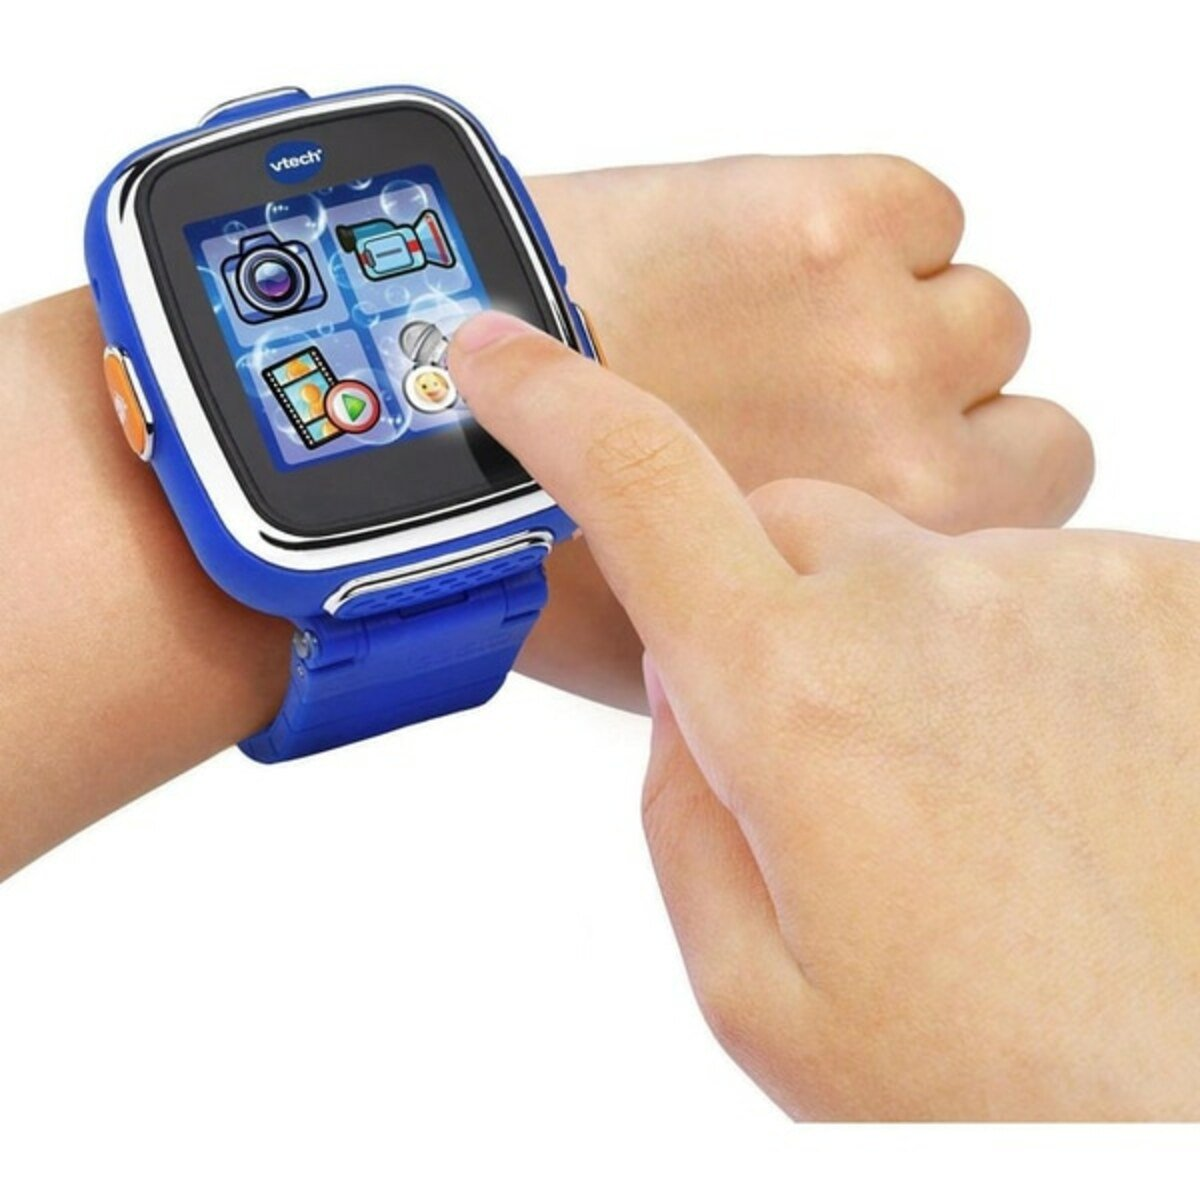 Bild 4 von VTech - Kidizoom: Smart Watch DX2, blau